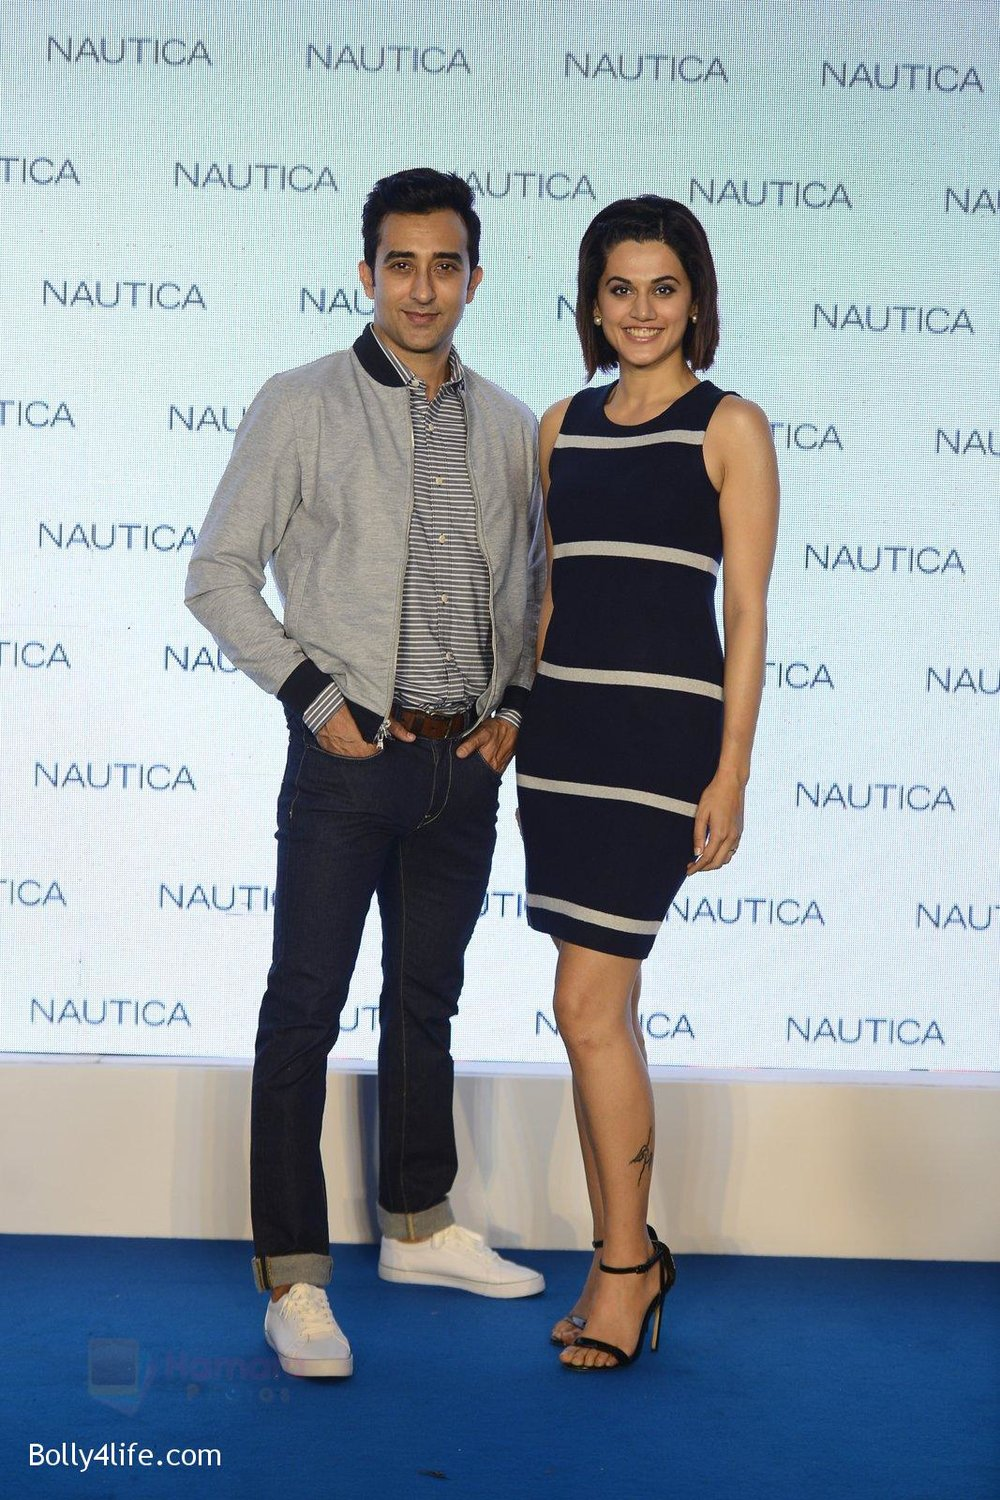 Taapsee-pannu-and-rahul-khanna-at-nautica-event-on-28th-Sept-2016-42.jpg